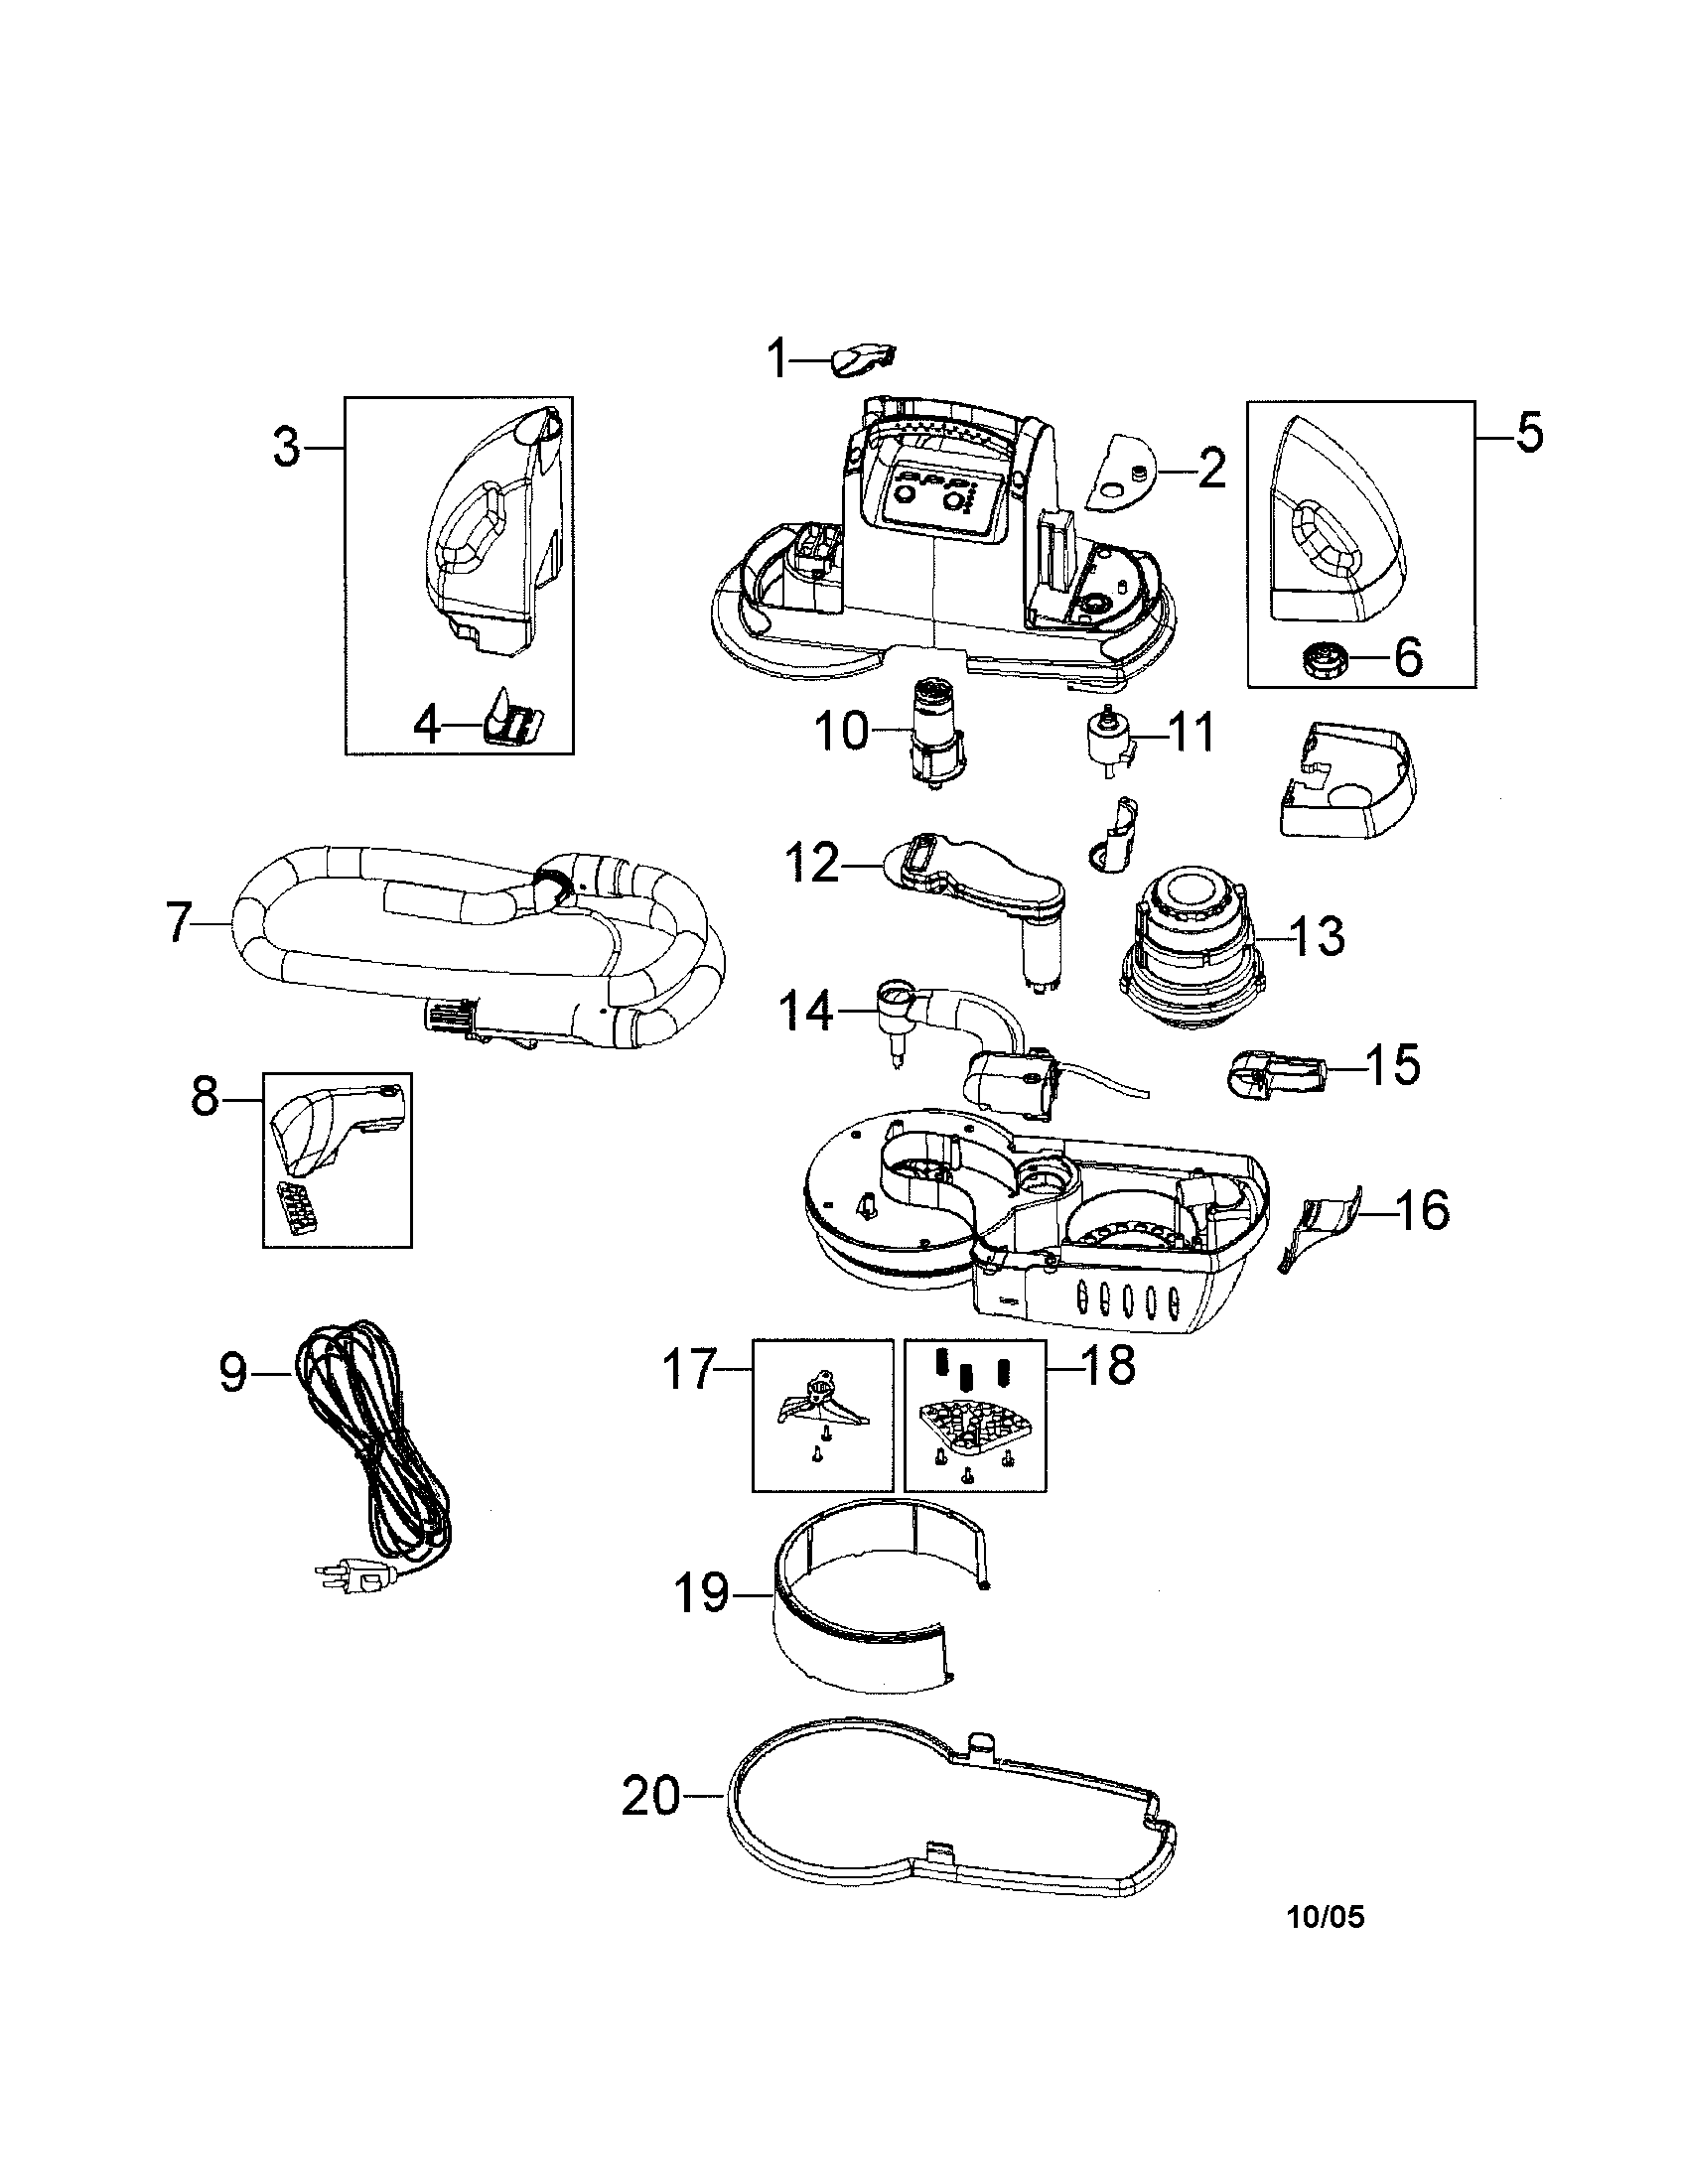 Spotbot Carpet Cleaner Diagram Bissell Handheld Carpet